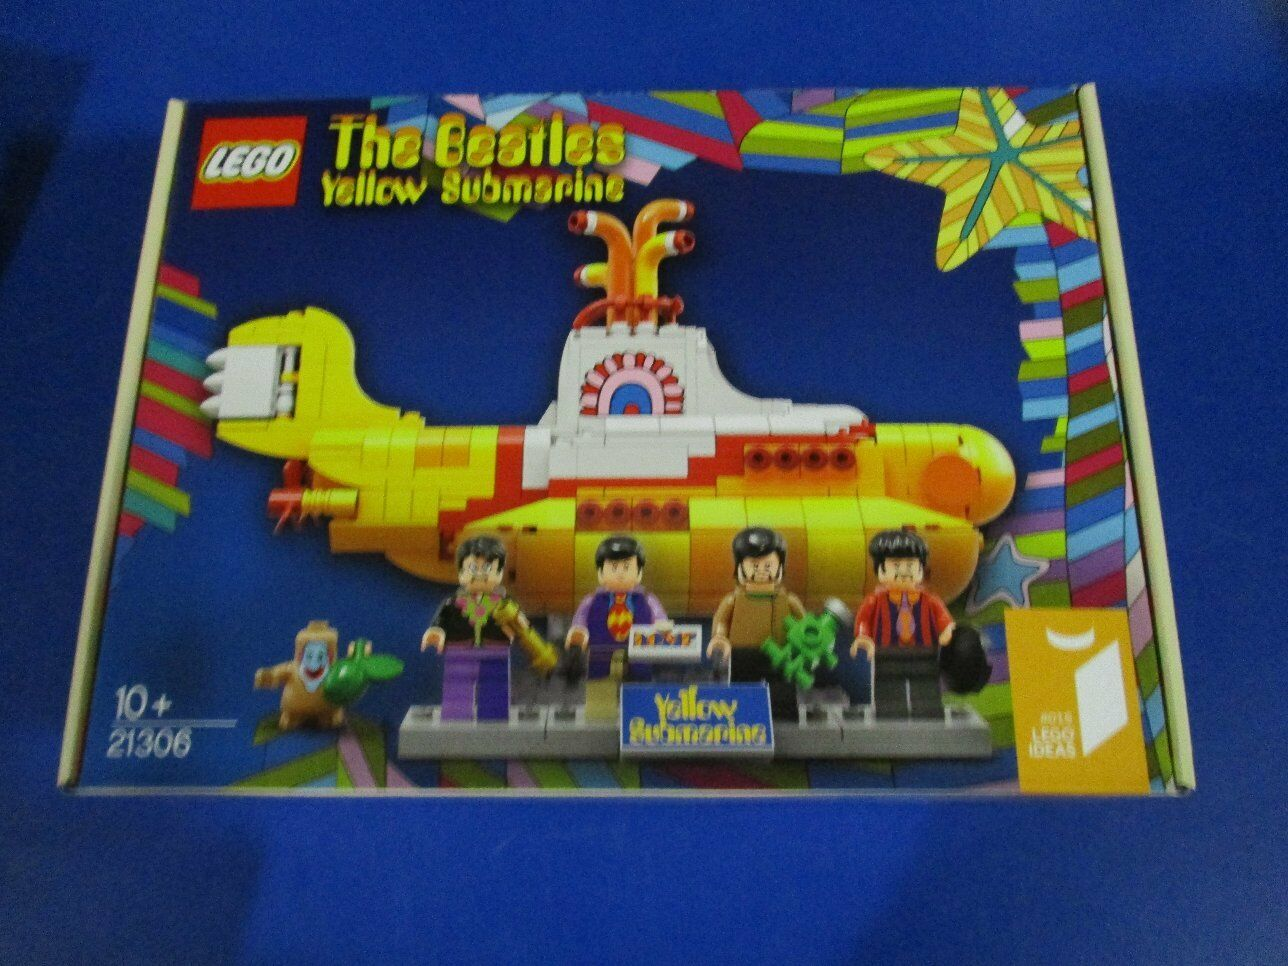 Lego 21306 ideas the beatles amarillo Submarine nuevo embalaje original